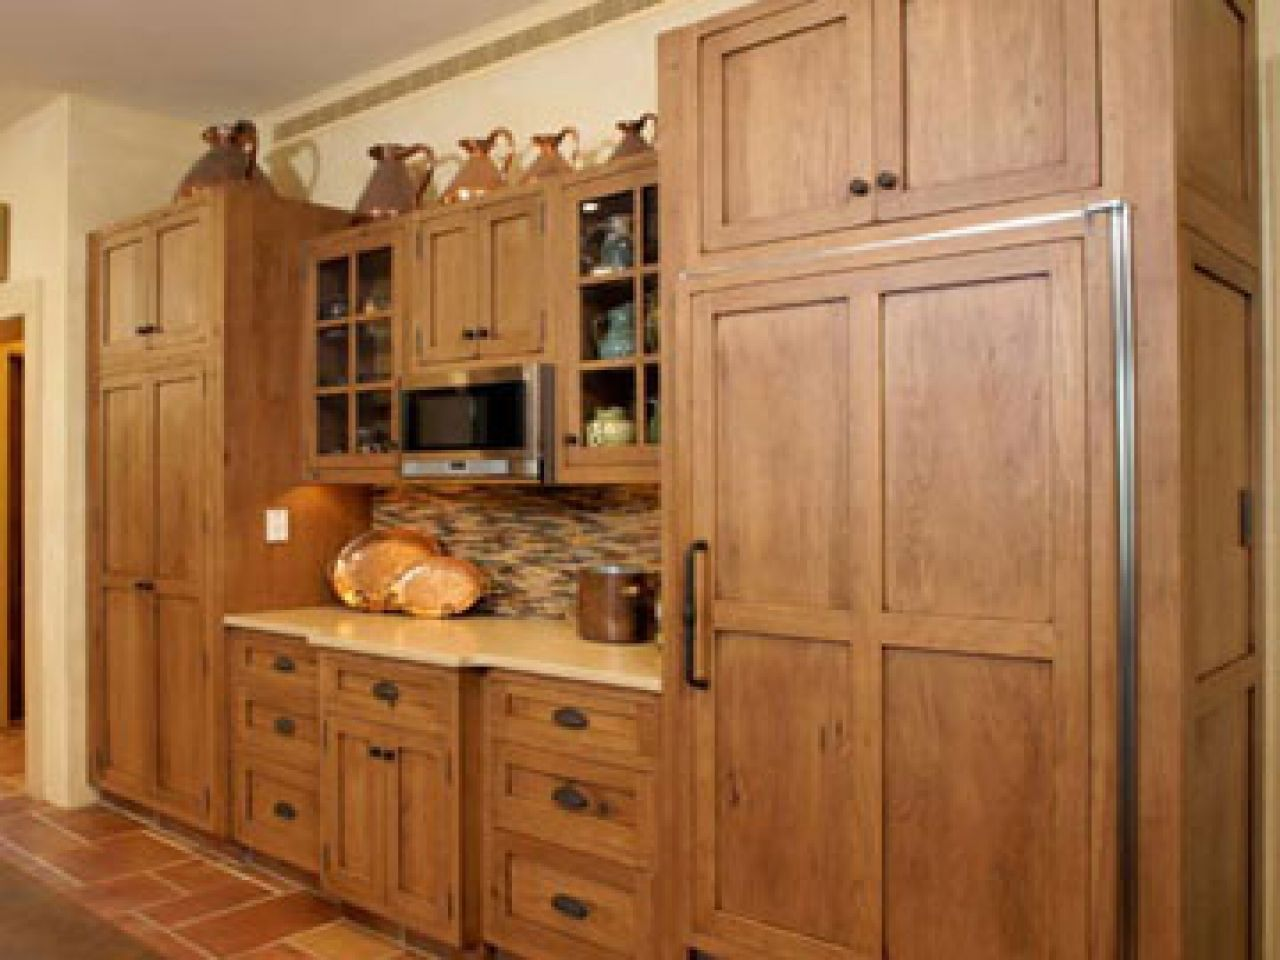 hickory shaker style kitchen cabinets moen pullout faucet alder new ideas in